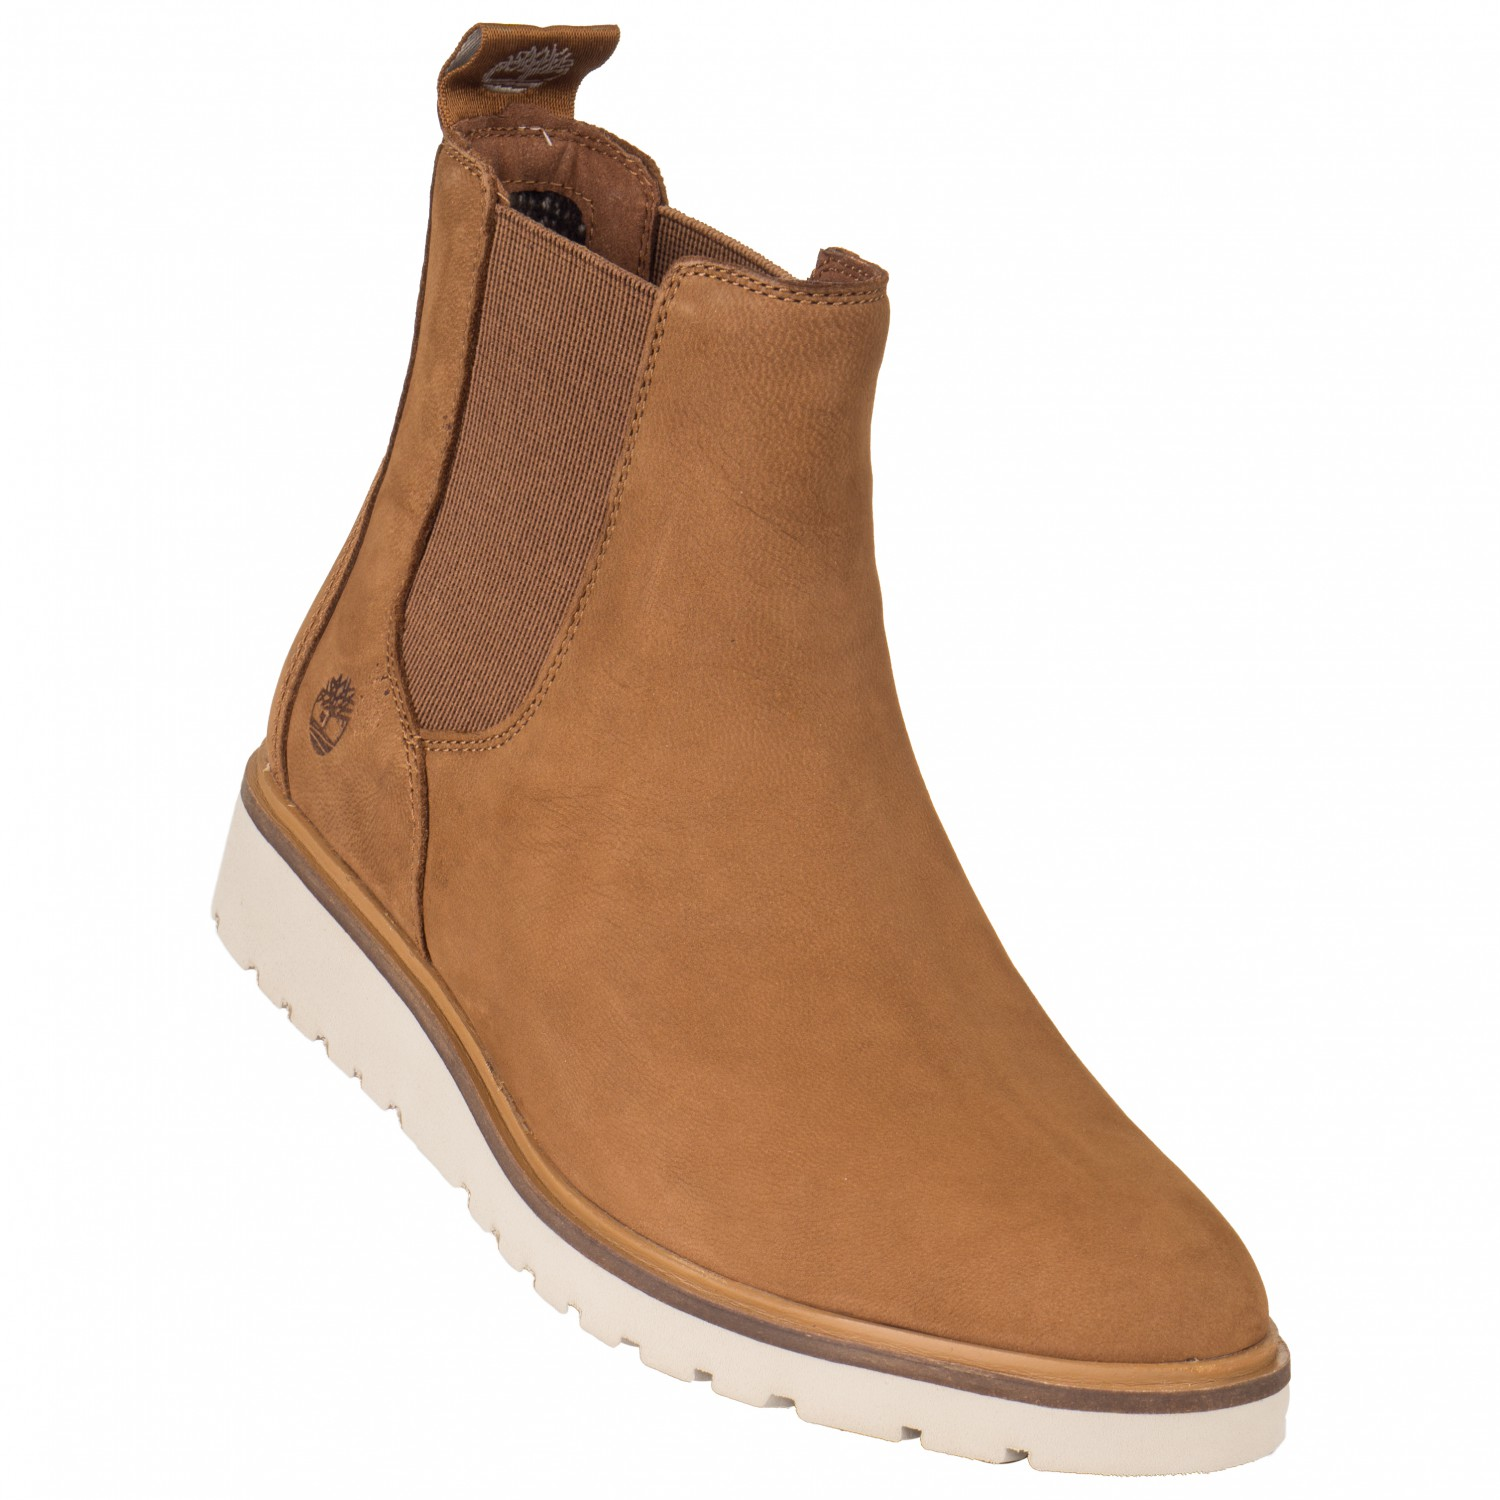 quality design c4bf2 18e8f Timberland - Women's Ellis Street Chelsea - Sneakers - Saddle Nubuck | 10  (US)